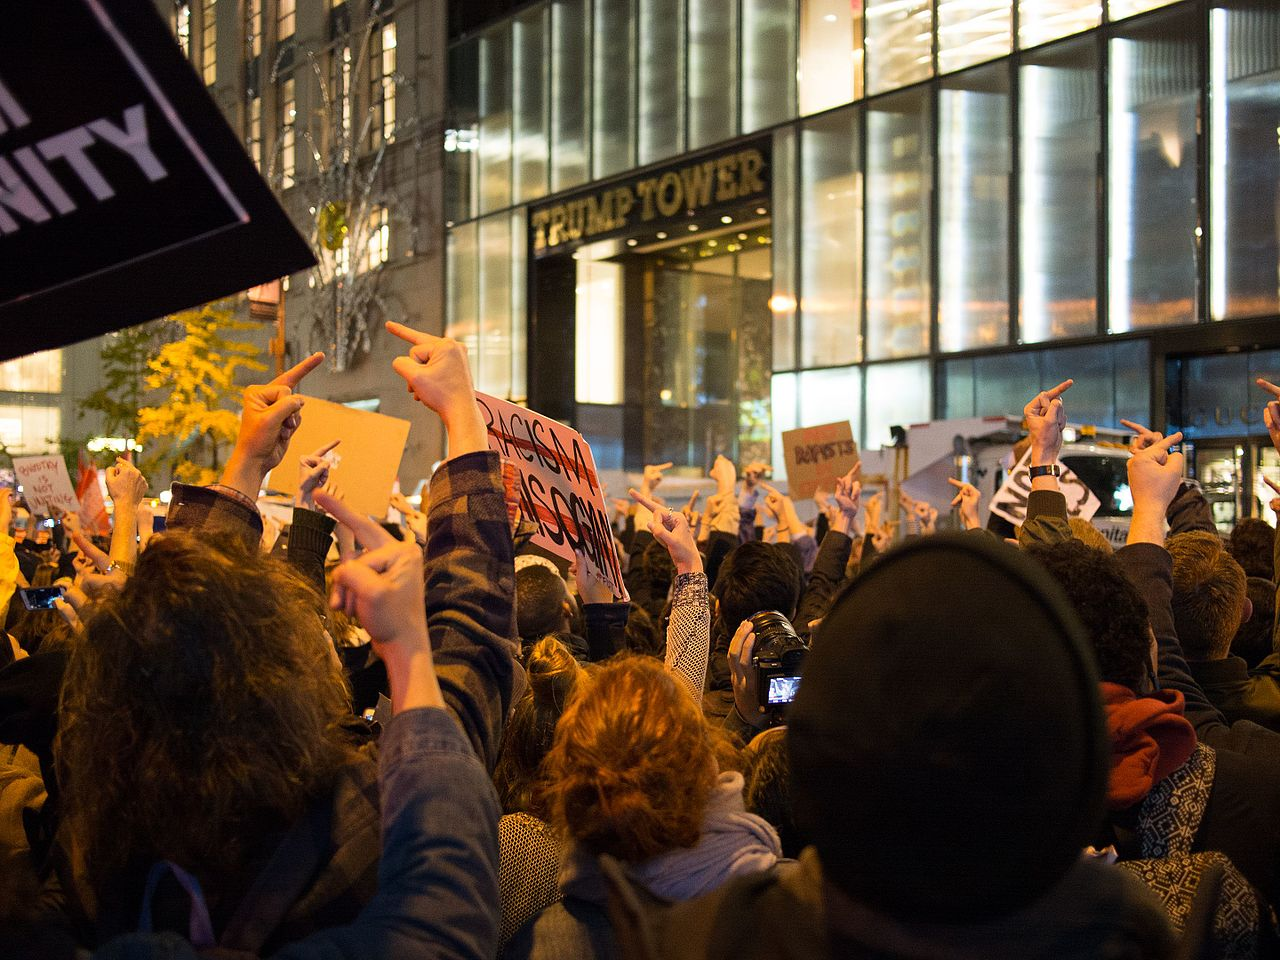 Protesters in Manhattan flip their middle fingers against the presidency of Donald Trump on November 9, 2016. (Photo by Rhododendrites/Wikimedia Commons)